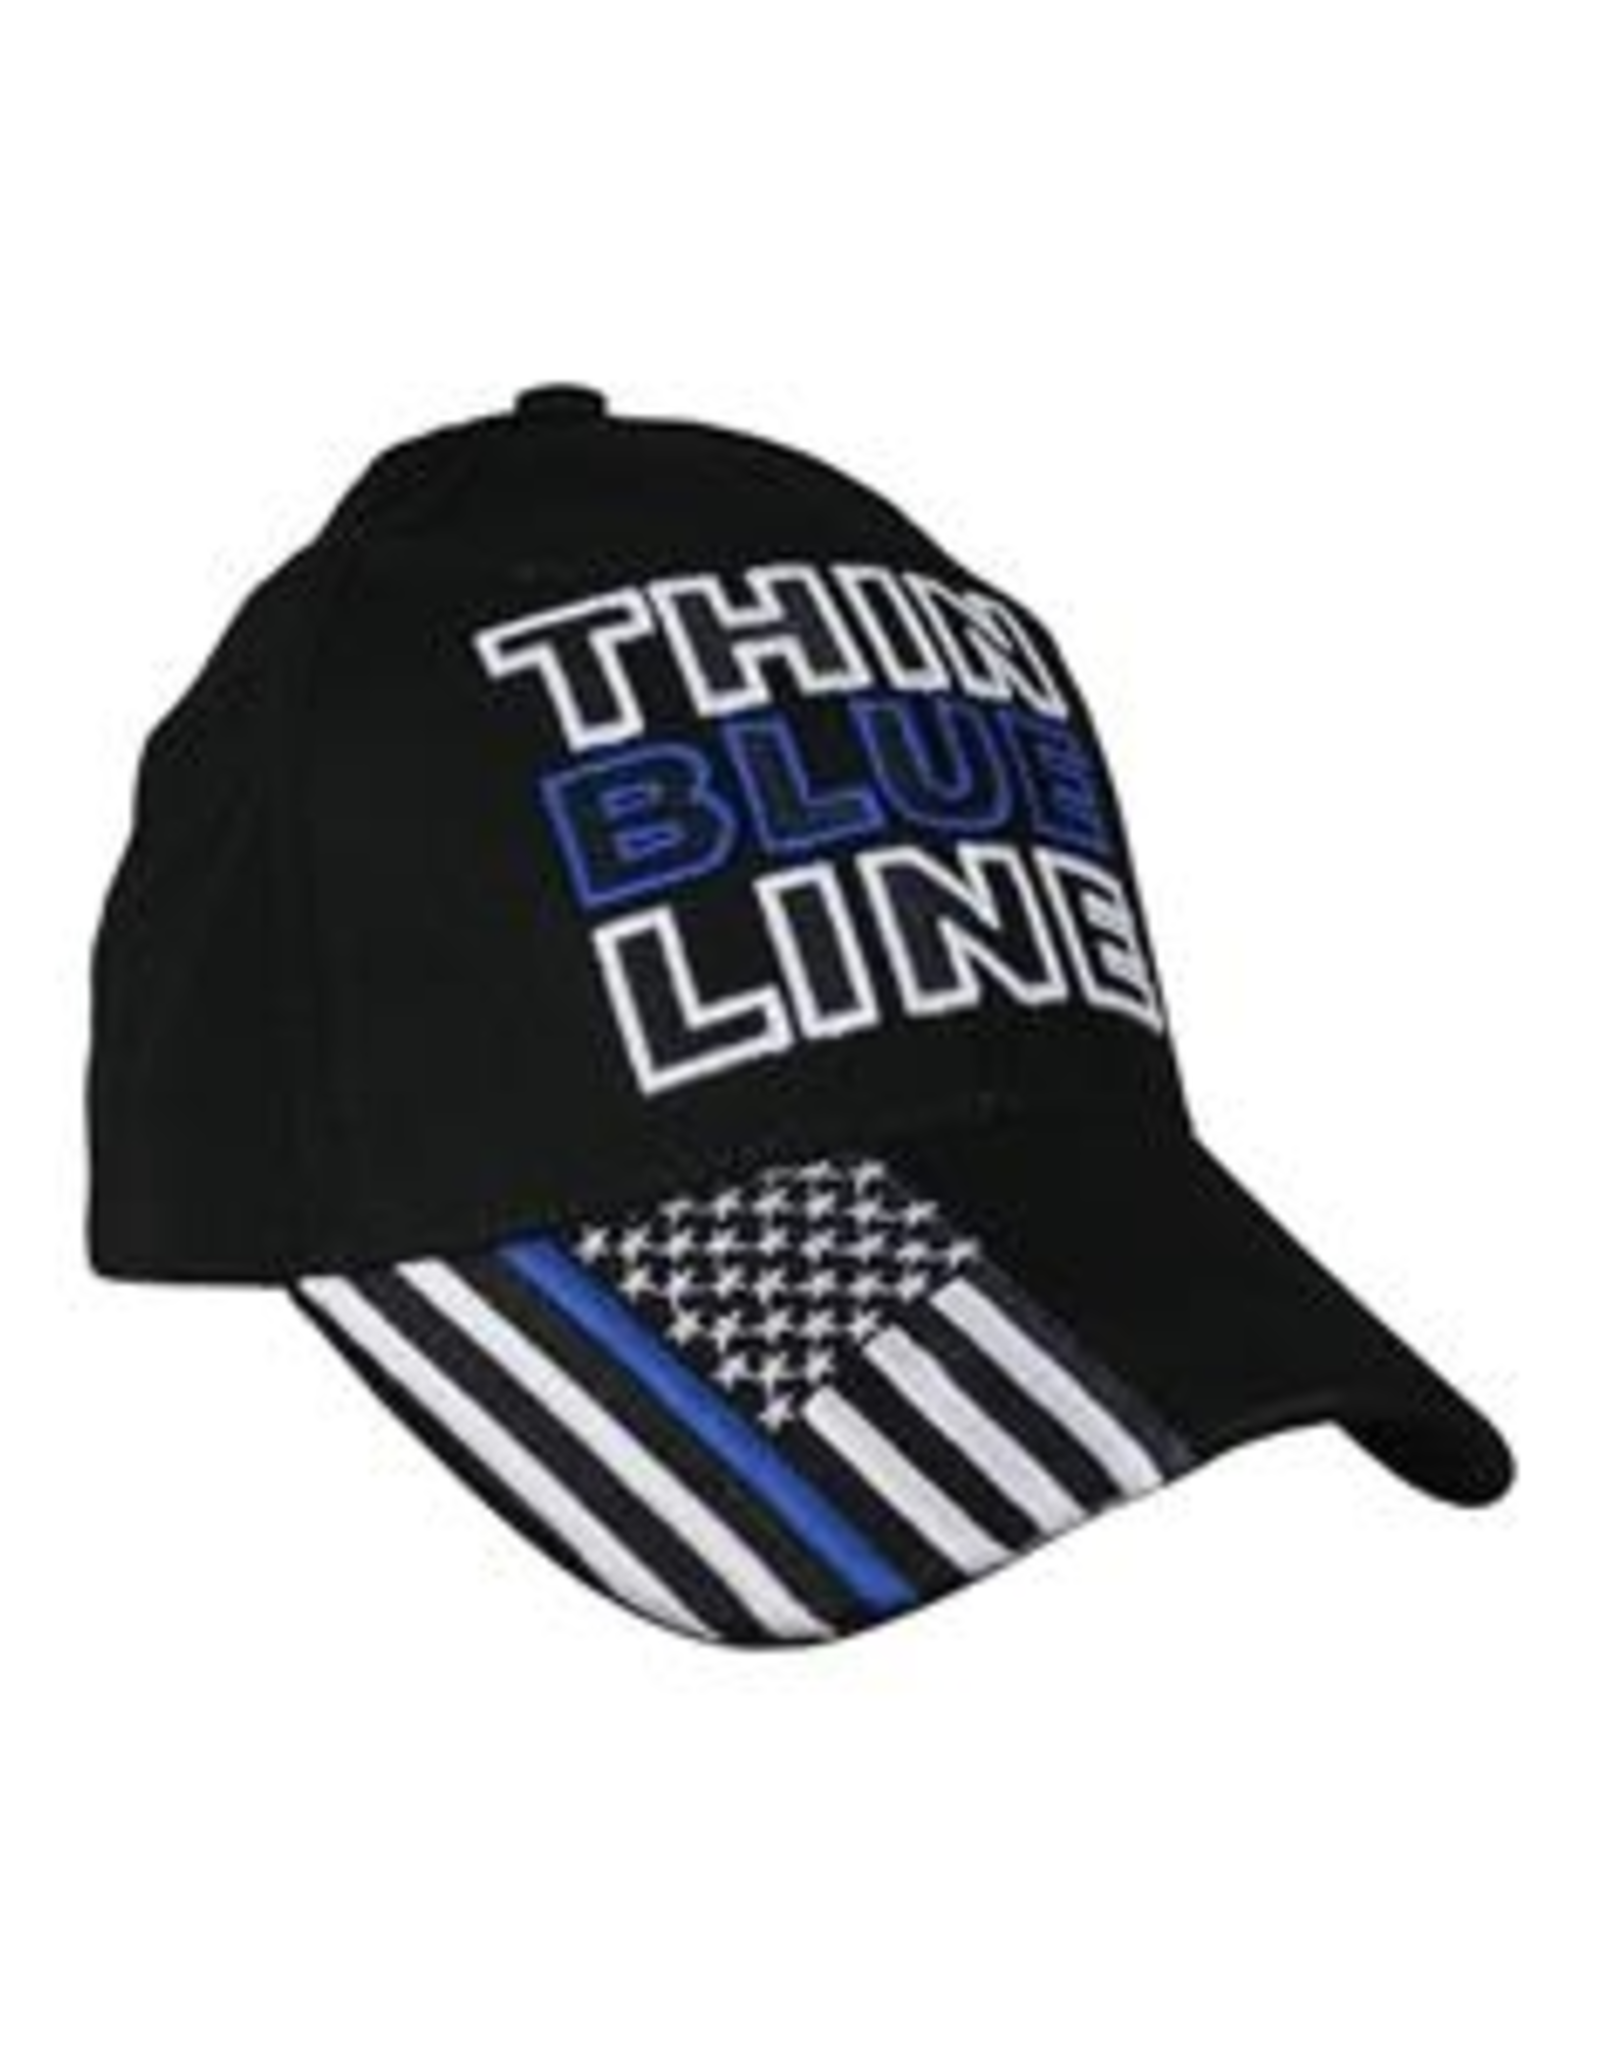 MidMil Thin Blue Line Hat with Flag with Blue Line on Bill Black